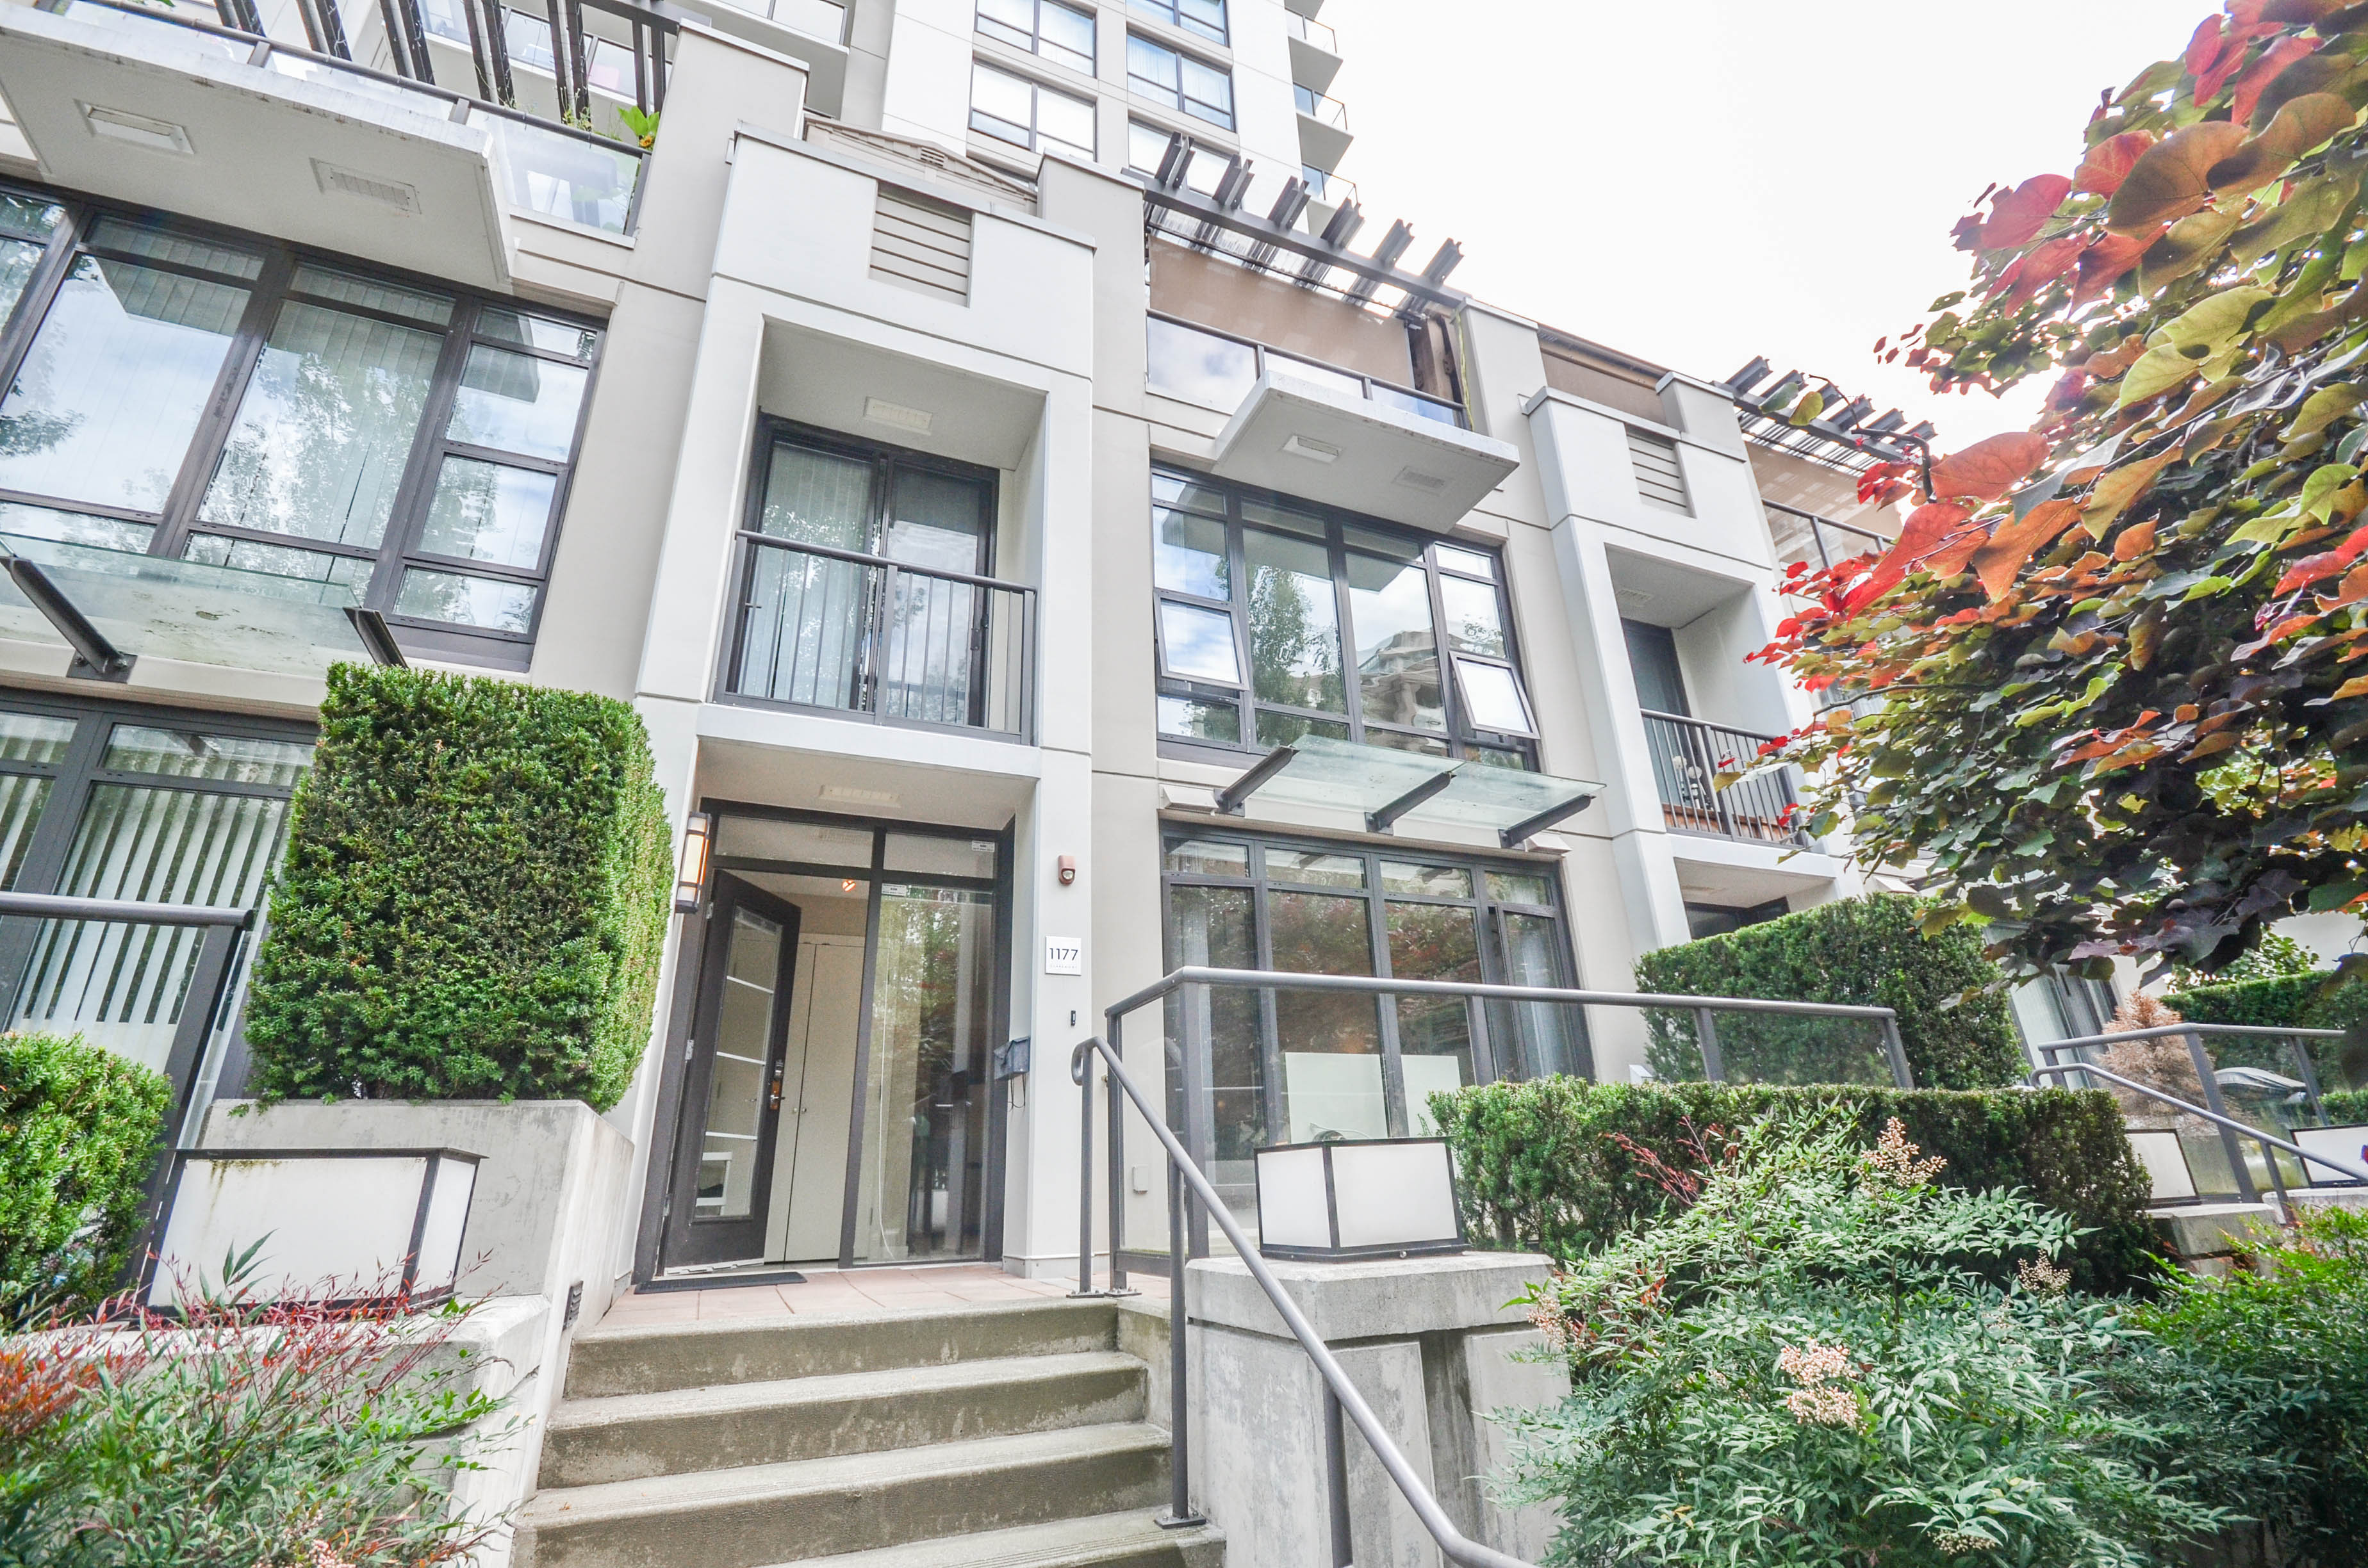 1177 The High St, Coquitlam